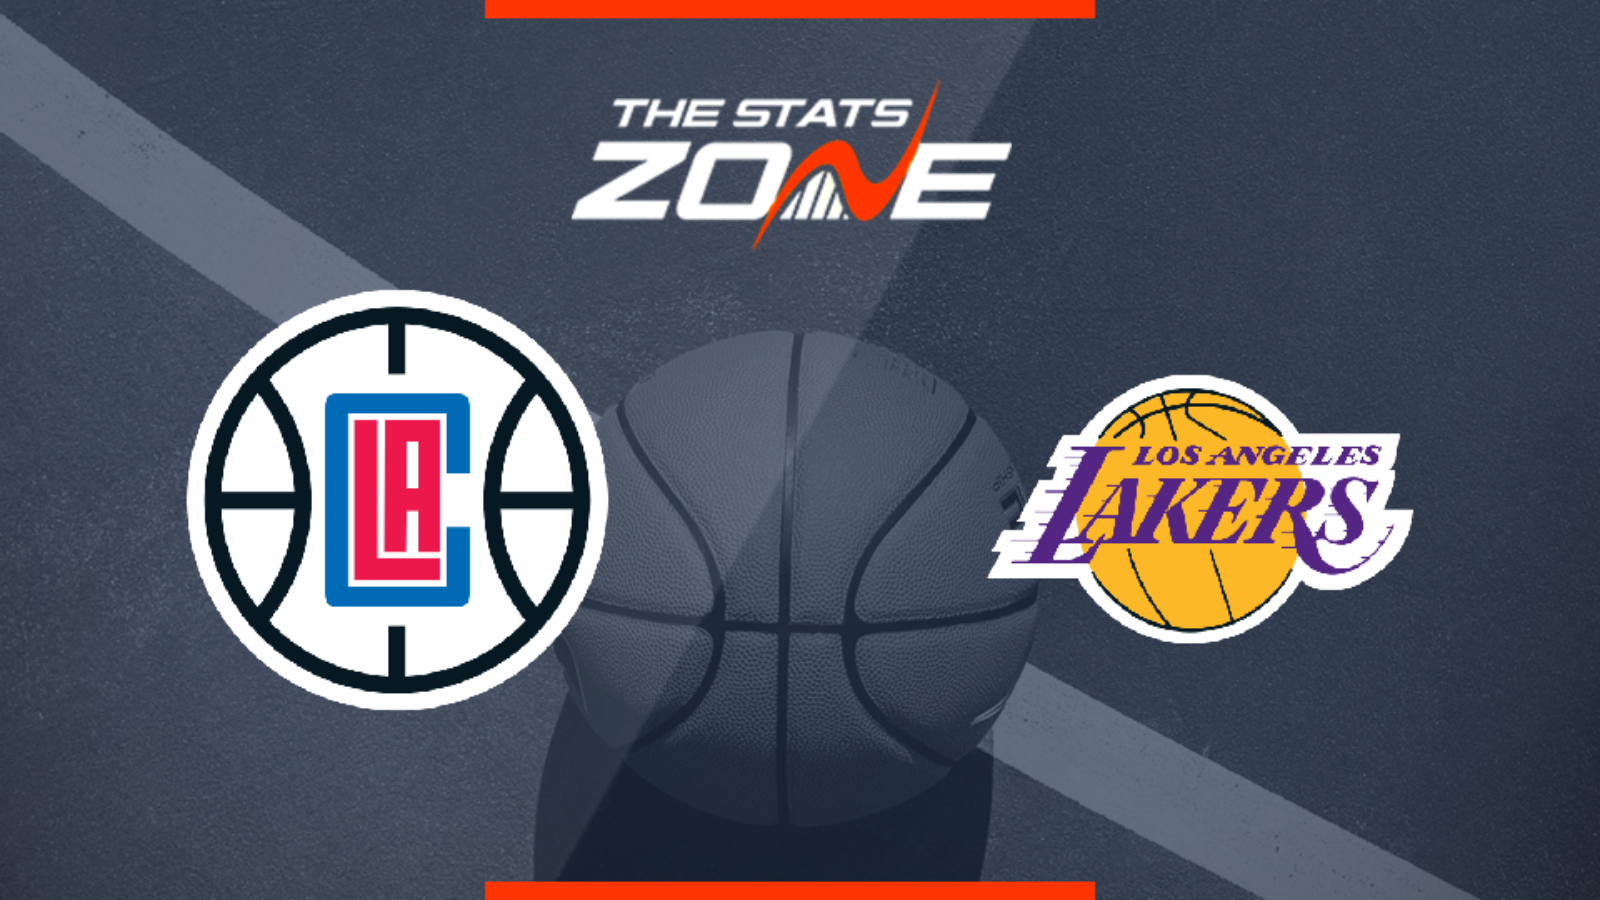 lakers vs clippers - photo #4